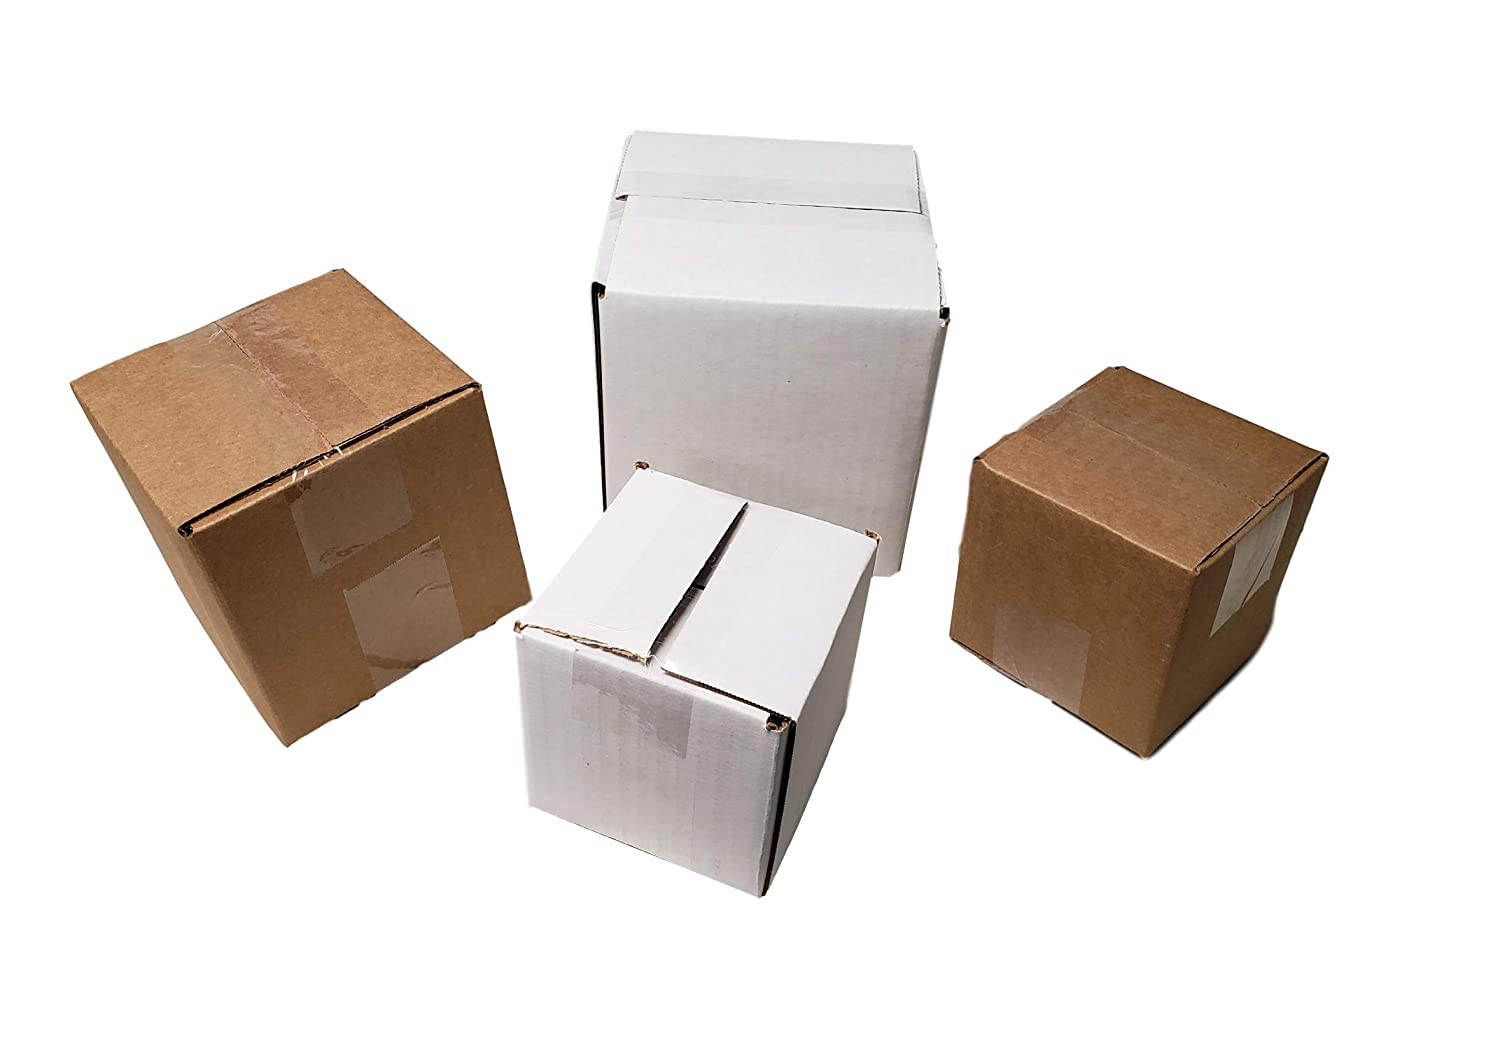 """Sturdy White Corrugated Cardboard Boxes for Shipping and Mailing Size 4"""" x 4"""" x 4"""" By MT Products (15 Pieces): Home Improvement"""